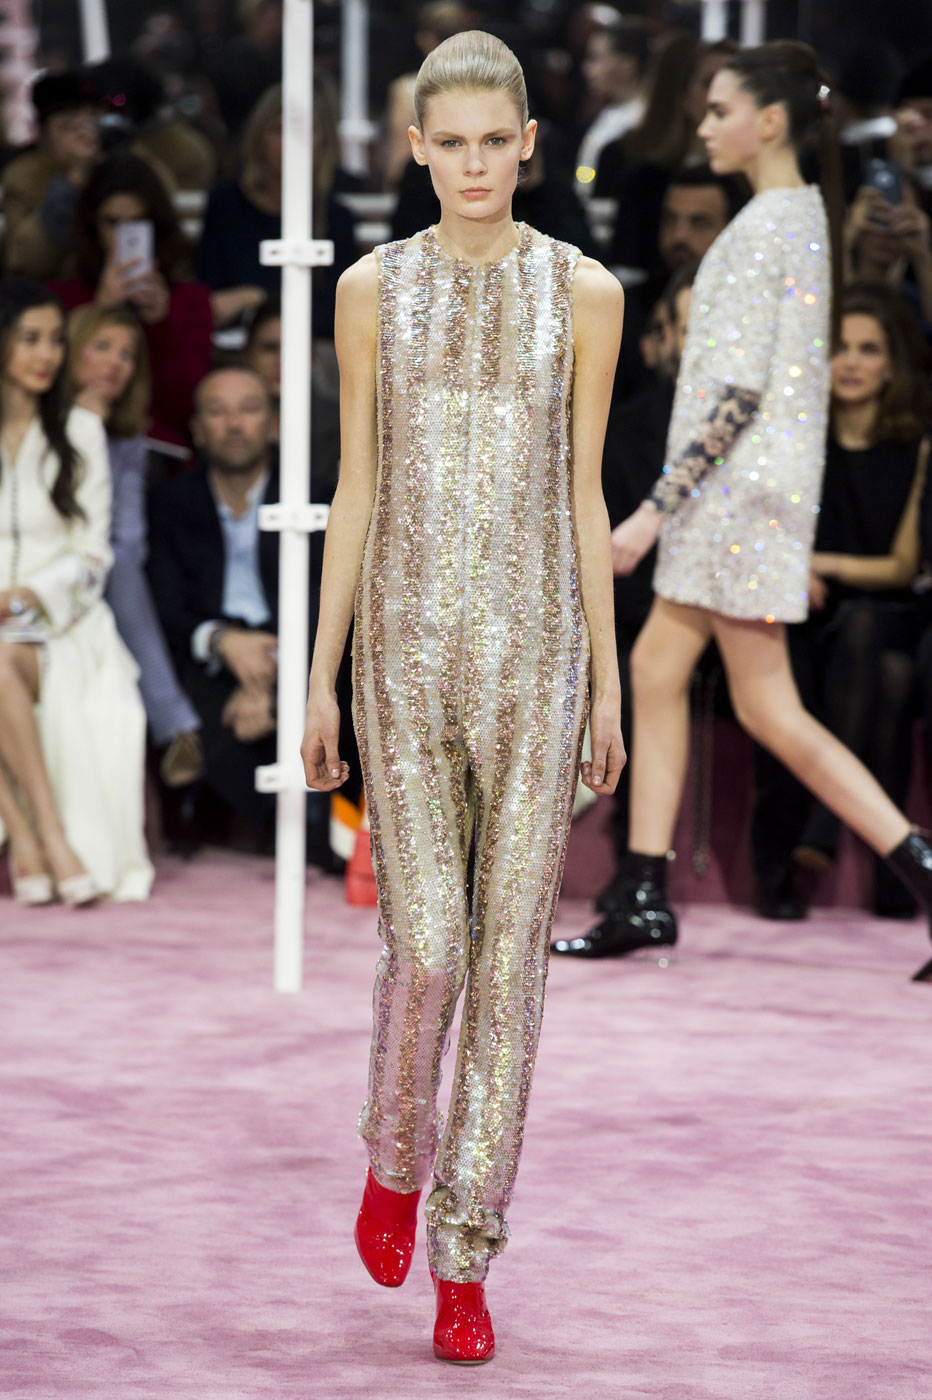 Christian-Dior-fashion-runway-show-haute-couture-paris-spring-summer-2015-the-impression-059